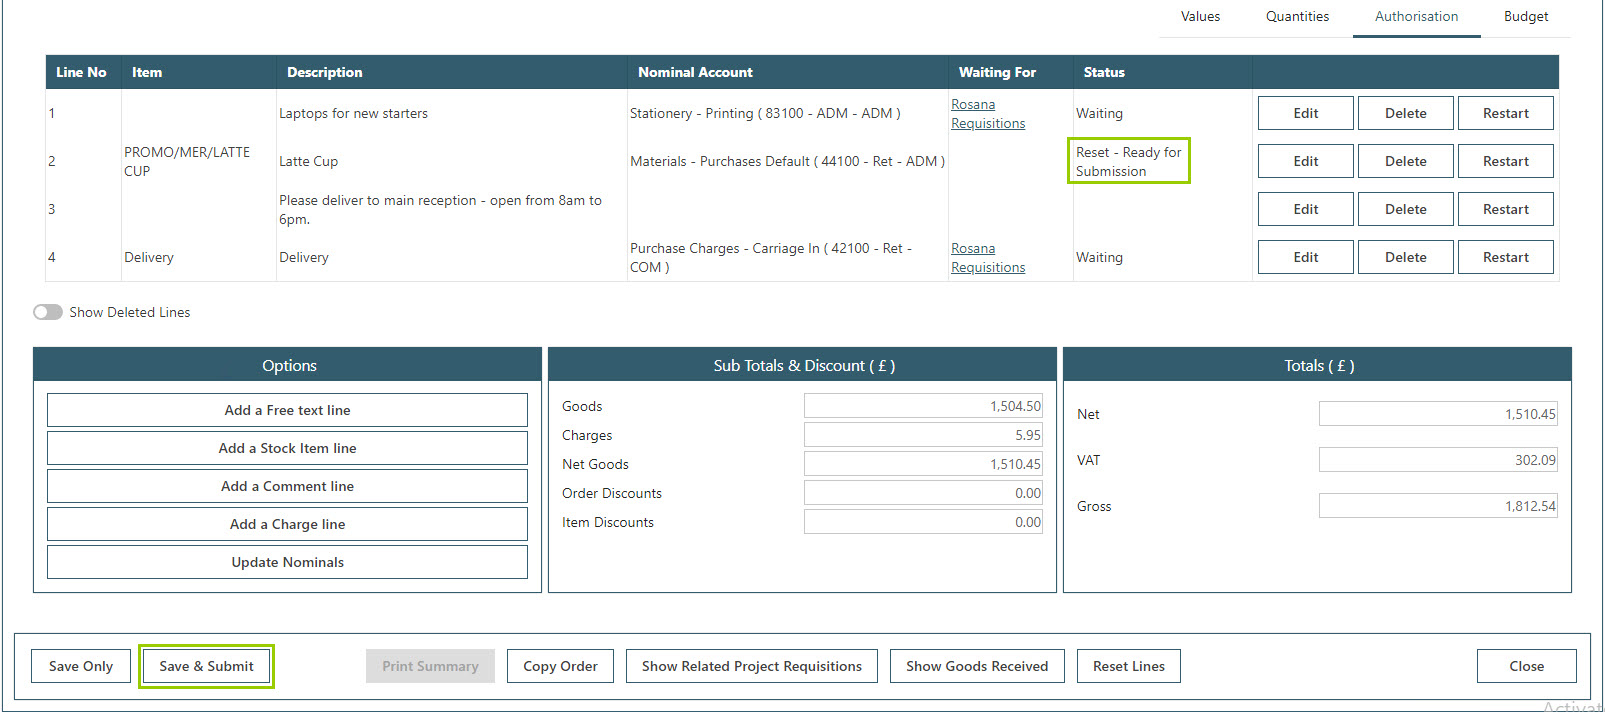 Sicon WAP Purchase Requisitions Help and User Guide - Requisition HUG Section 8.2 Image 4